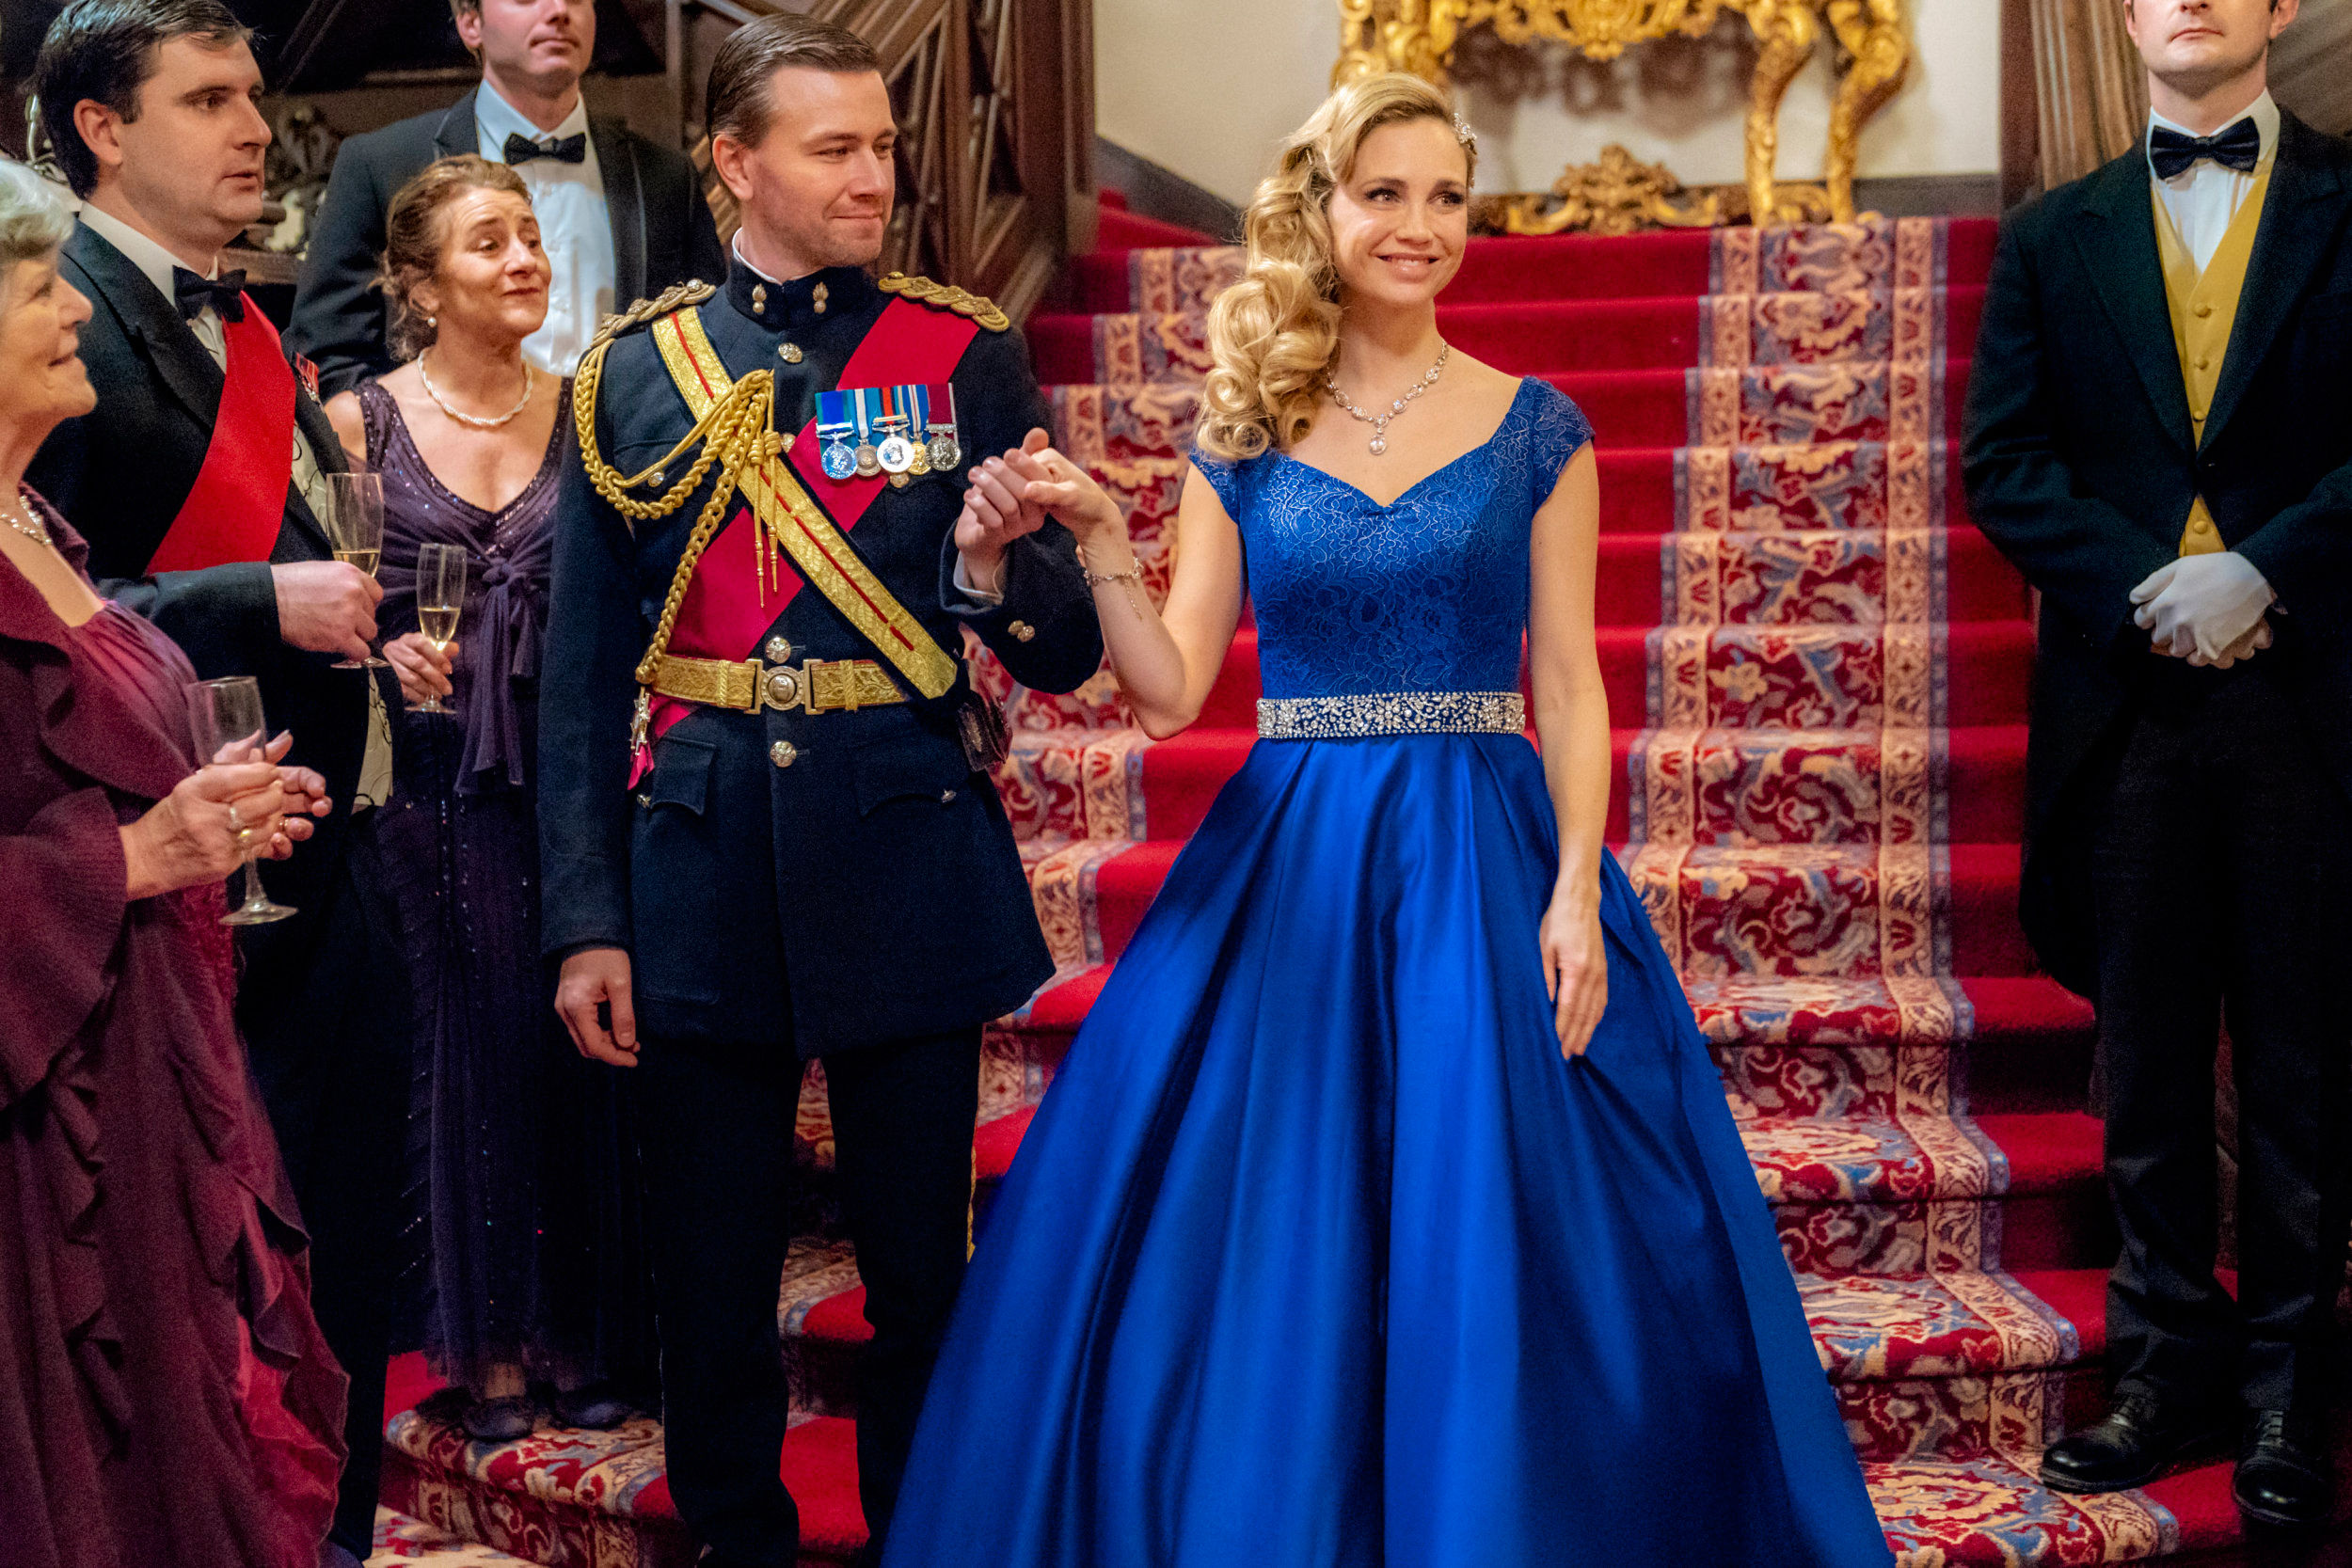 The Best Royal Hallmark Movies of All Time - Southern Living